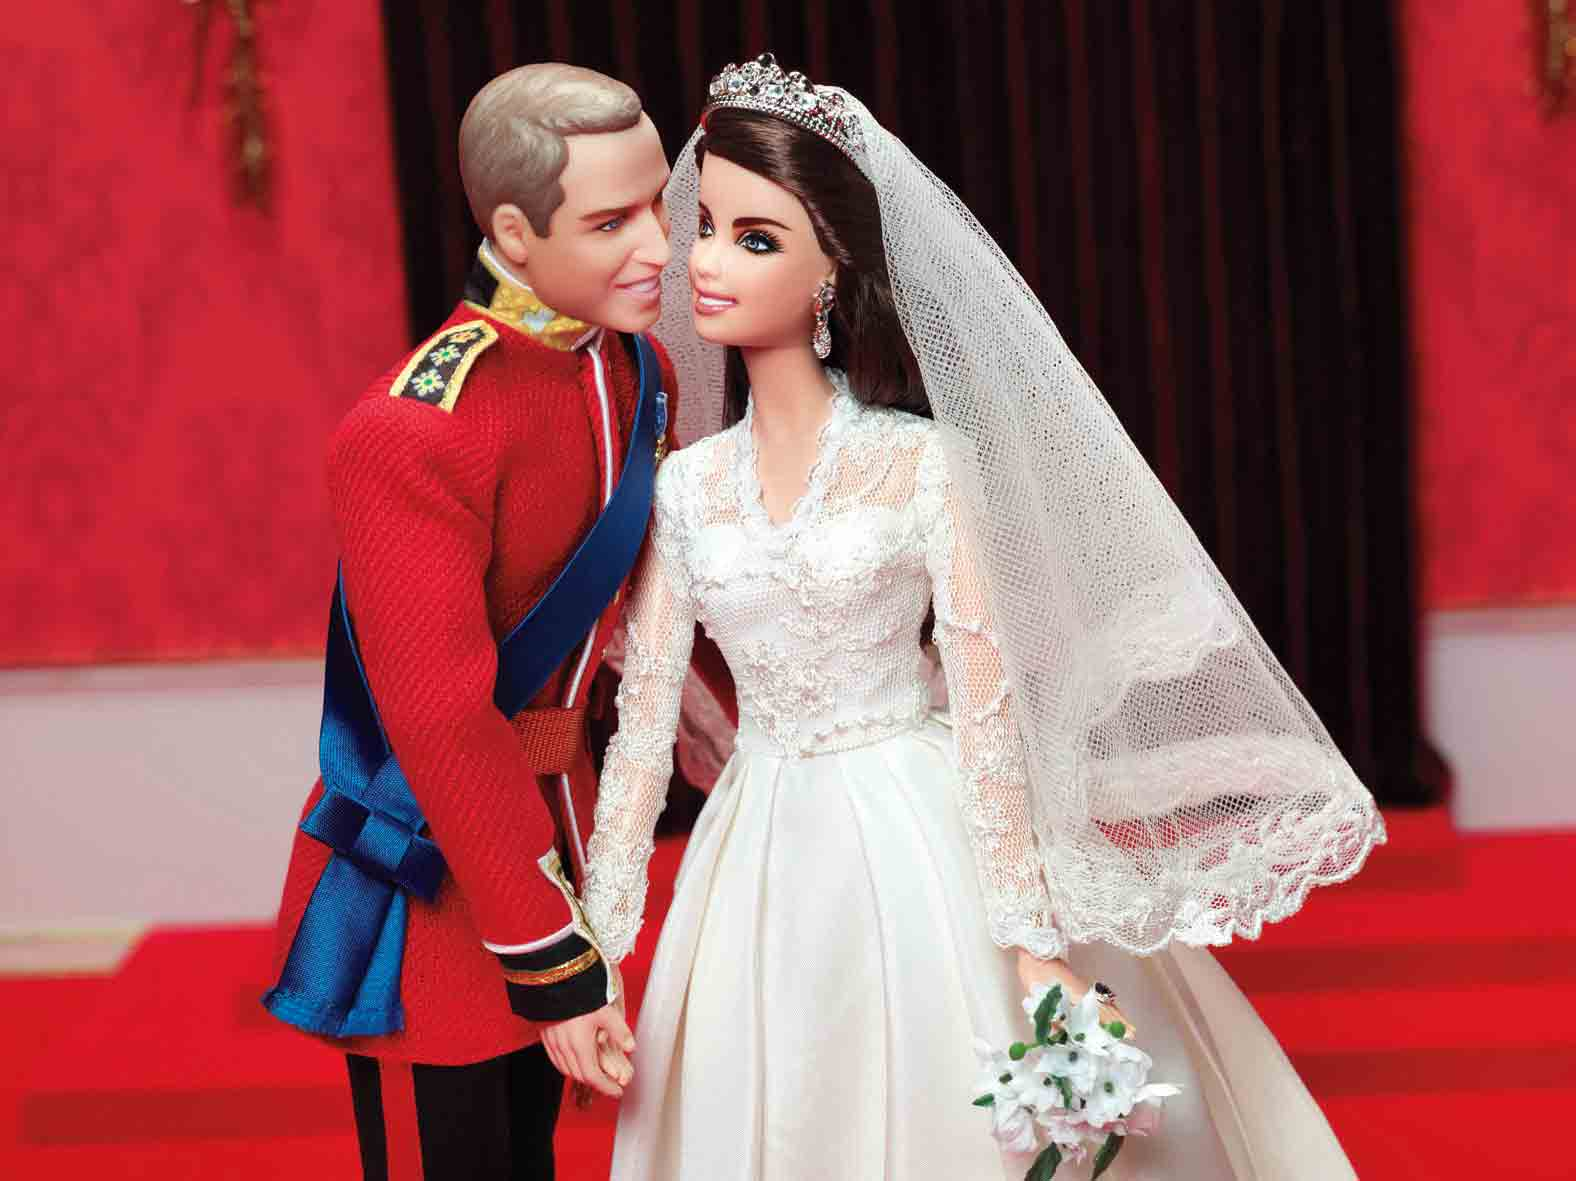 Barbie wedding kissing dress up games